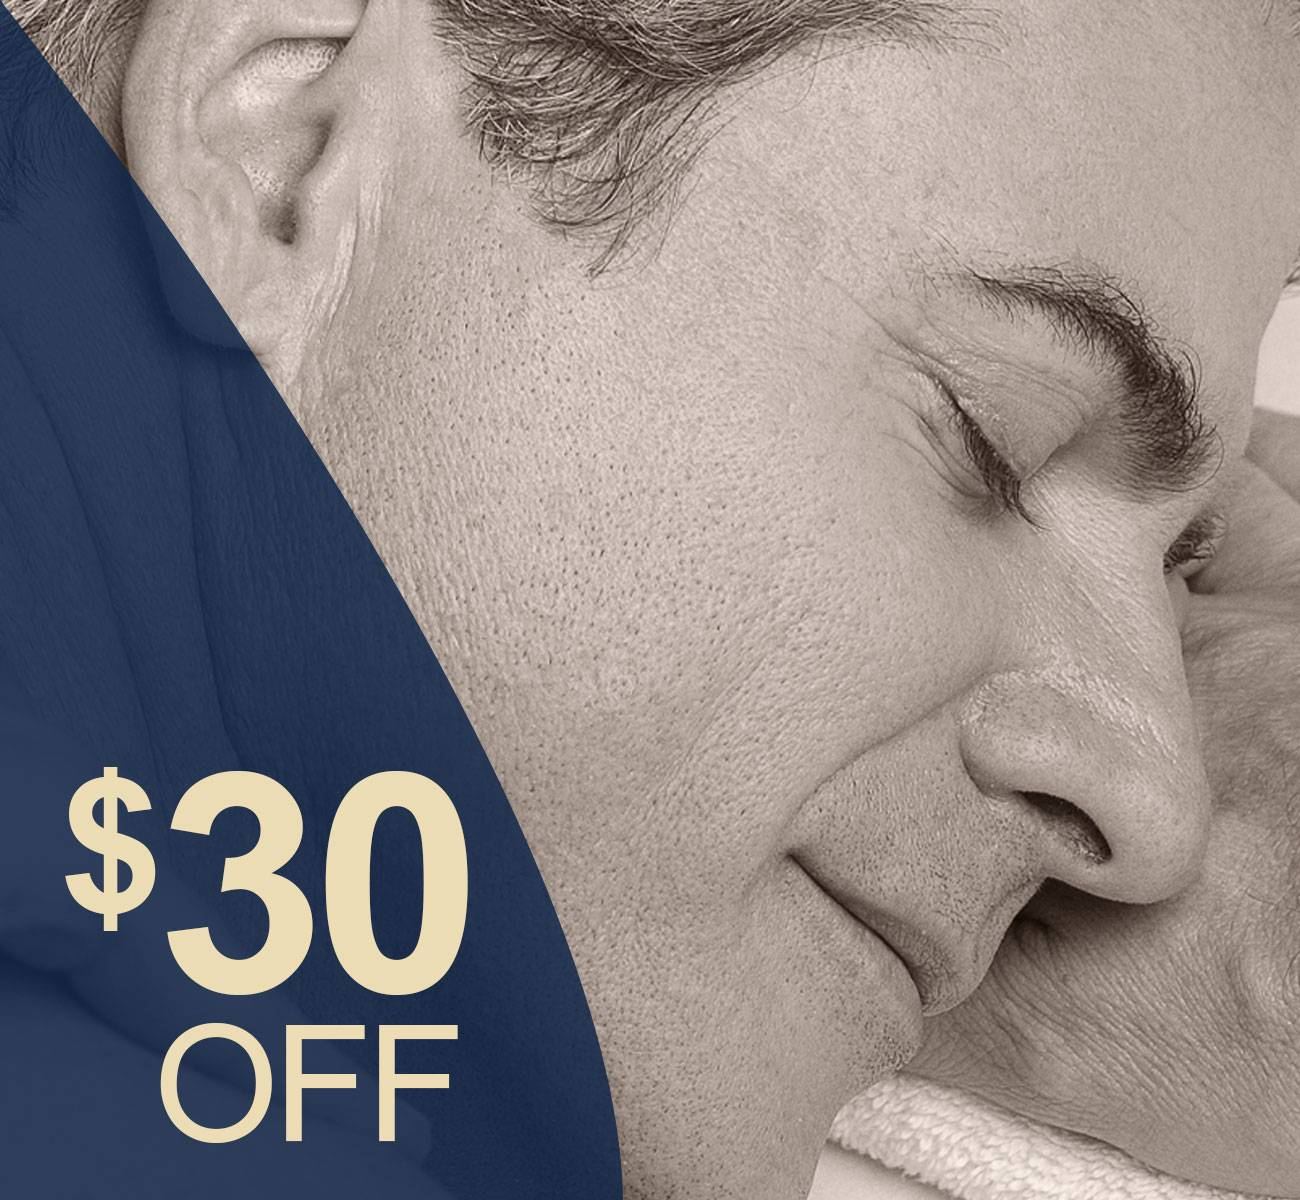 Save $30 on your next massage at Elements Massage!